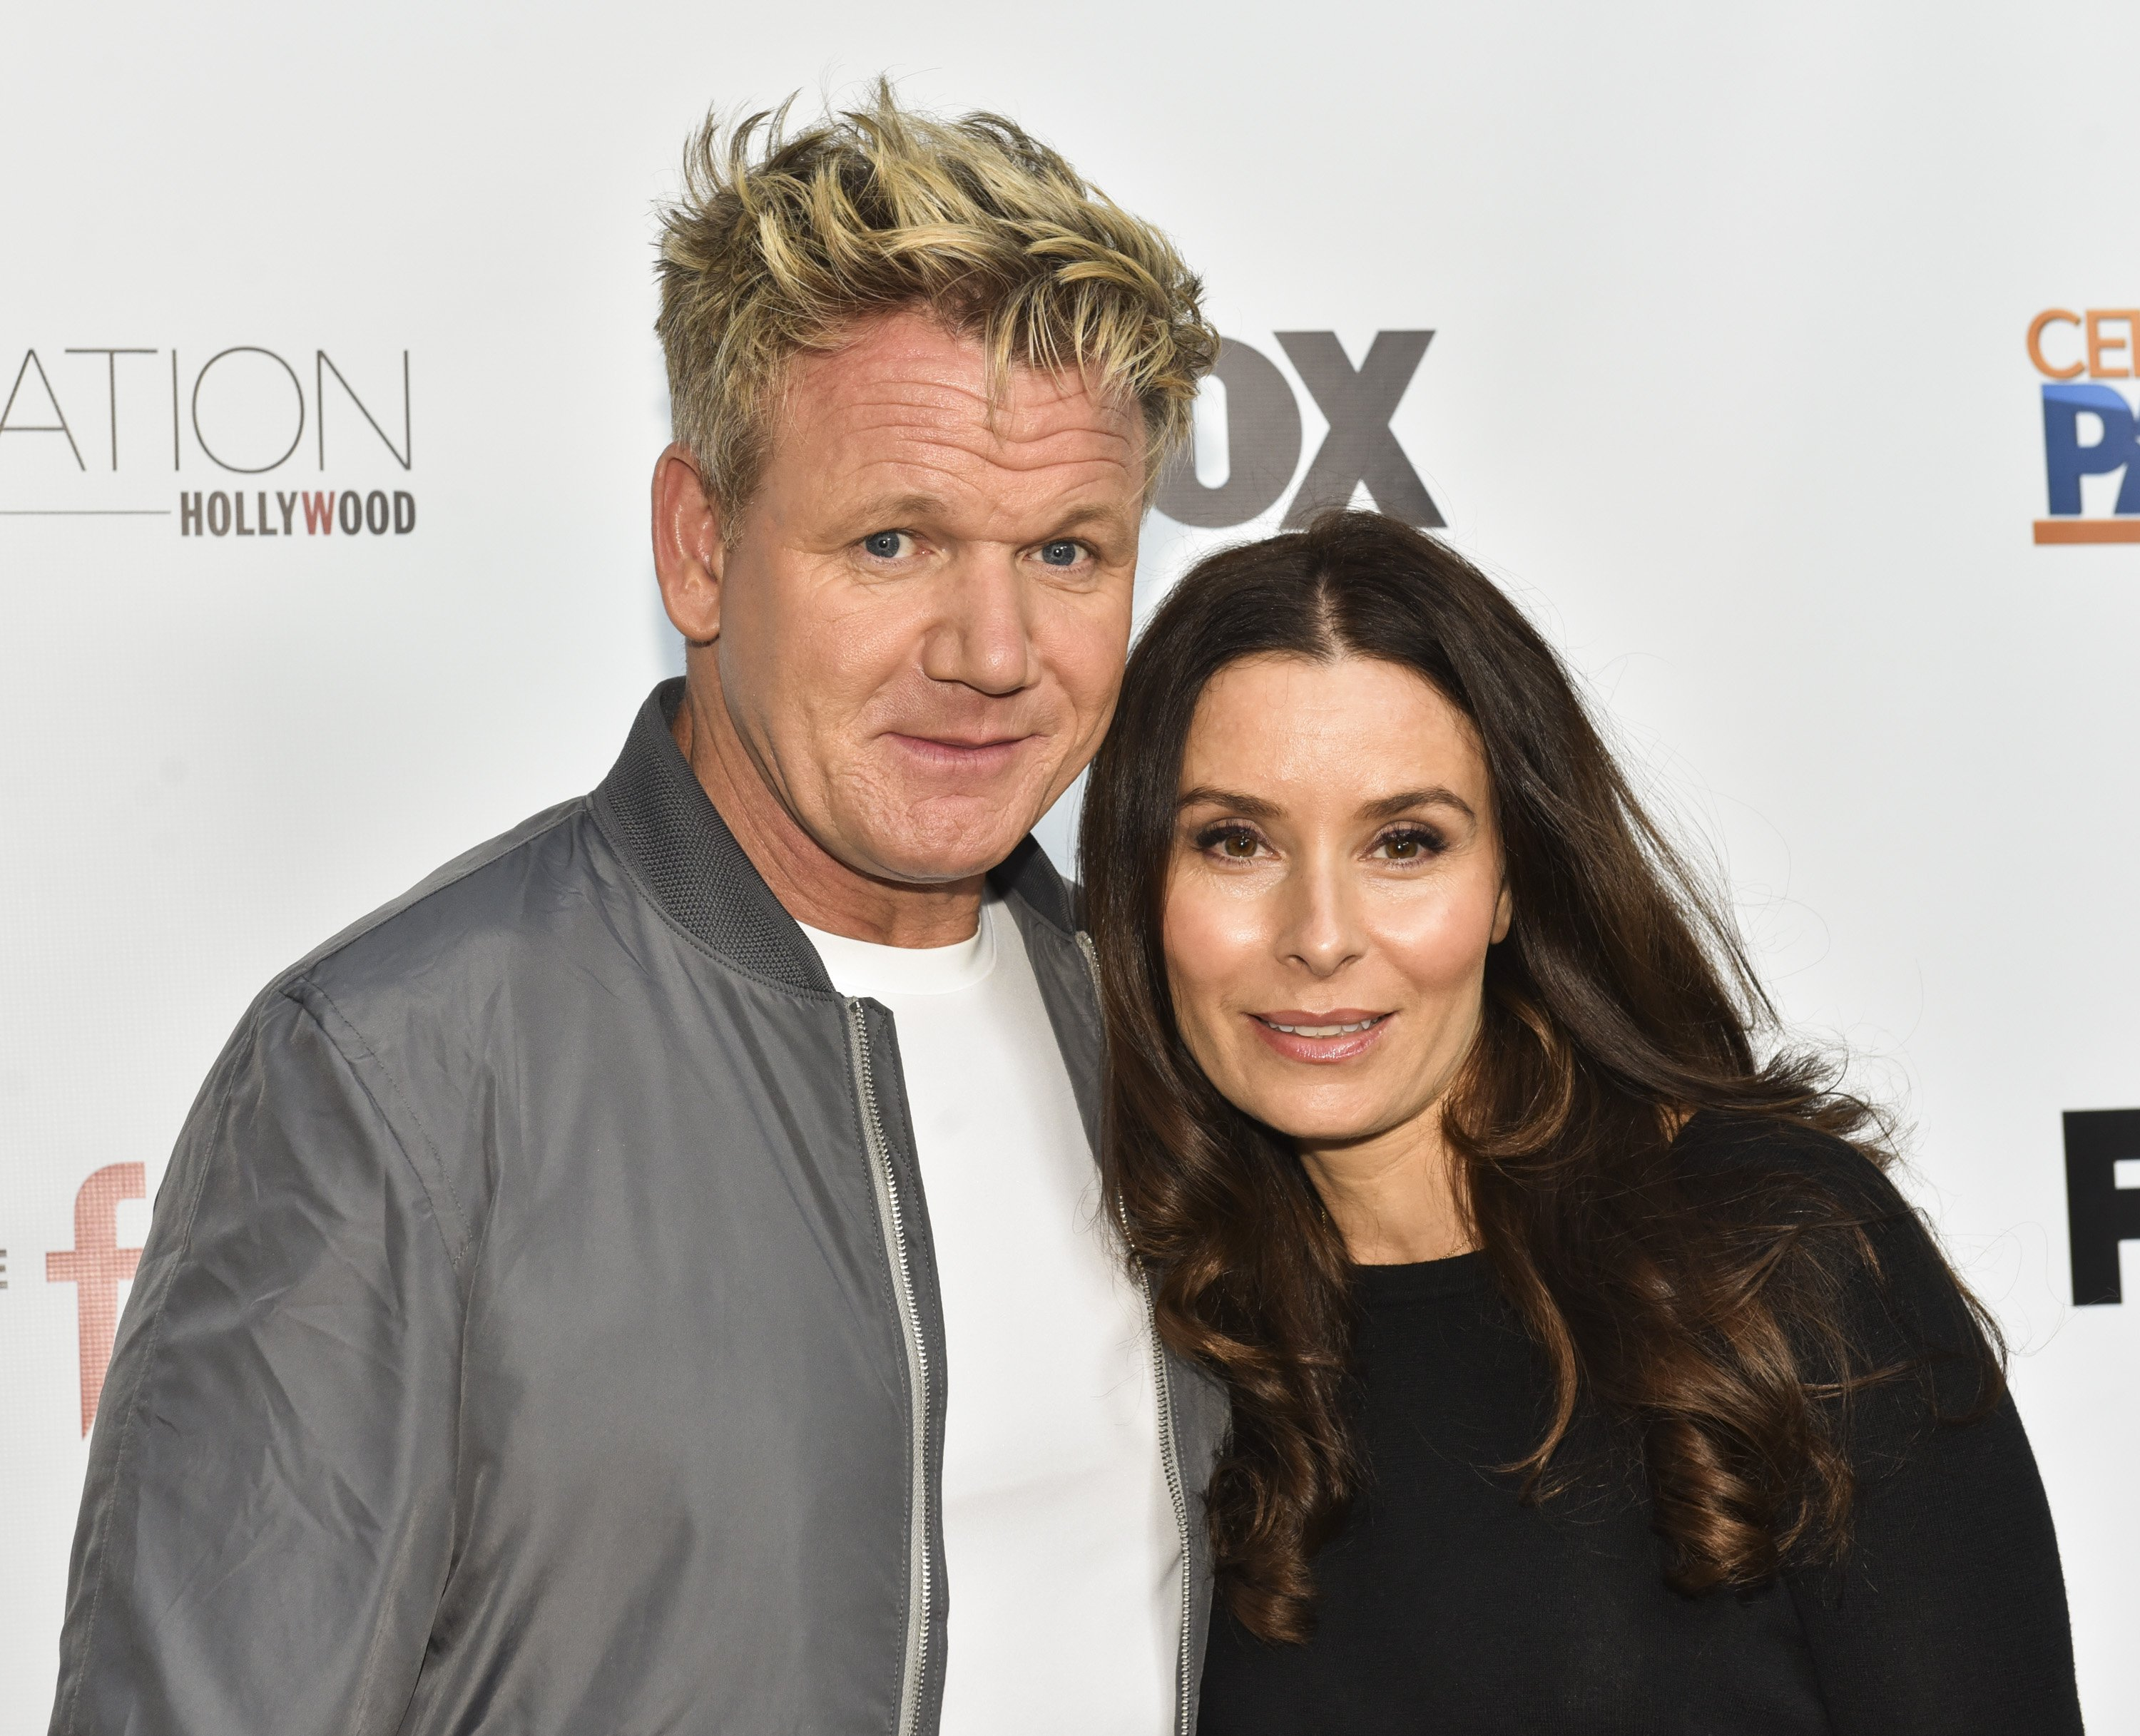 Gordon Ramsey und seine Frau, Tana Ramsey | Quelle: Getty Images